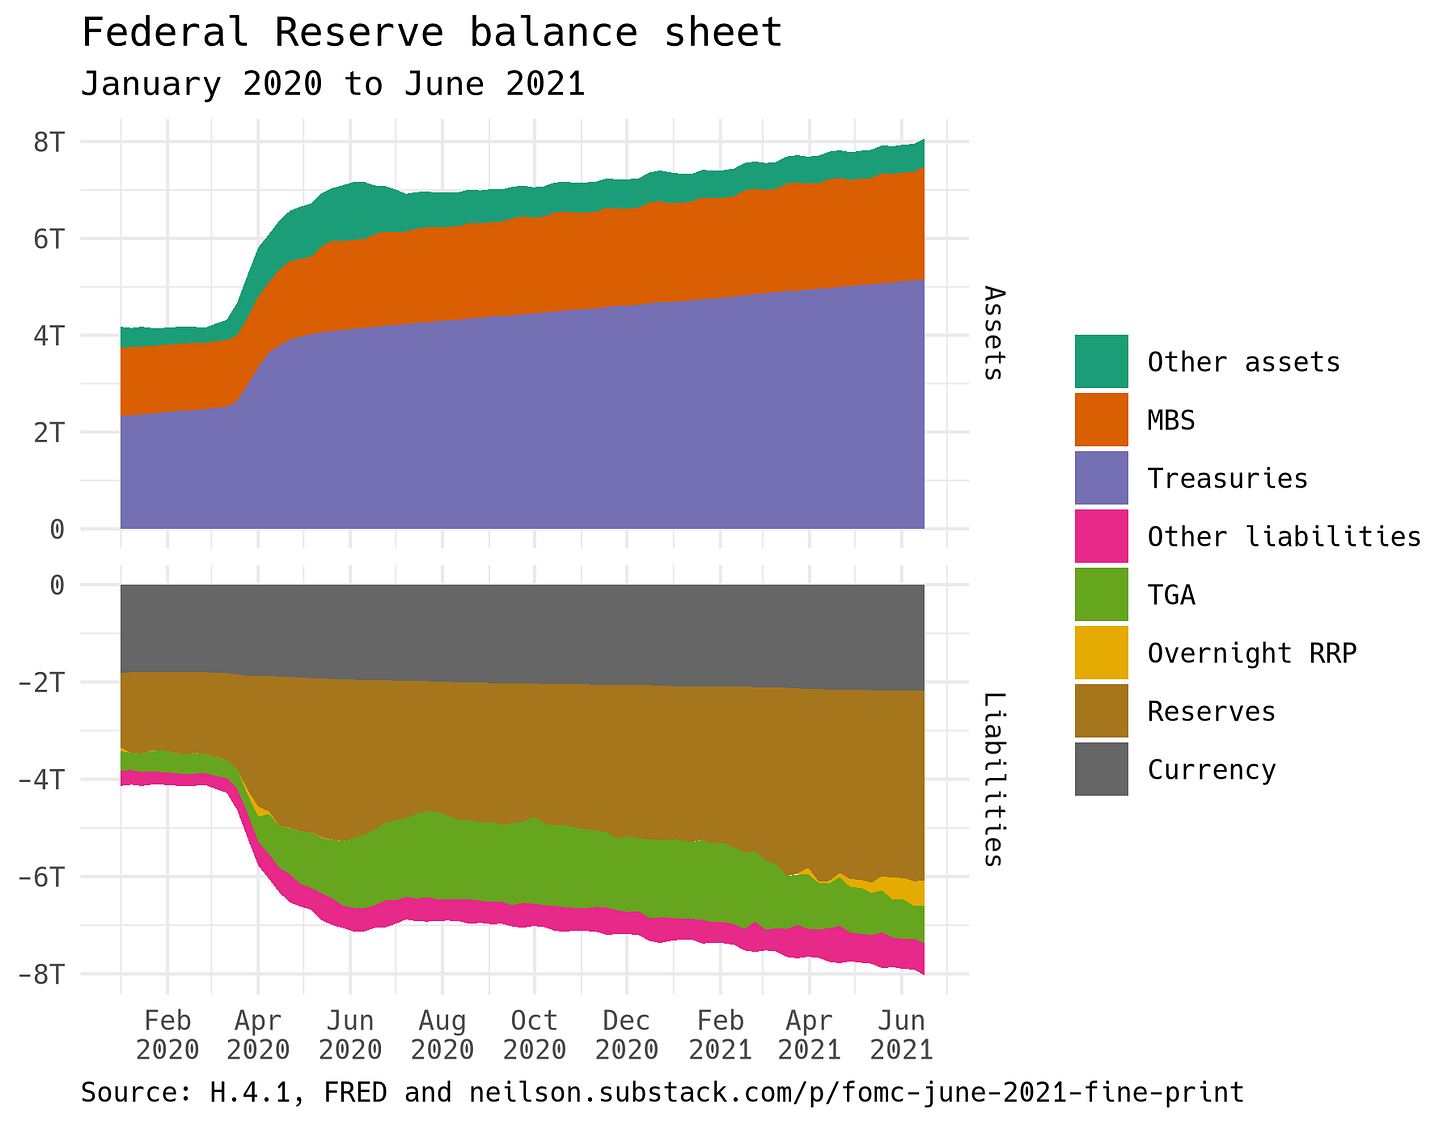 Graph showing the major components of the Fed's balance sheet from January 2020 to June 2021